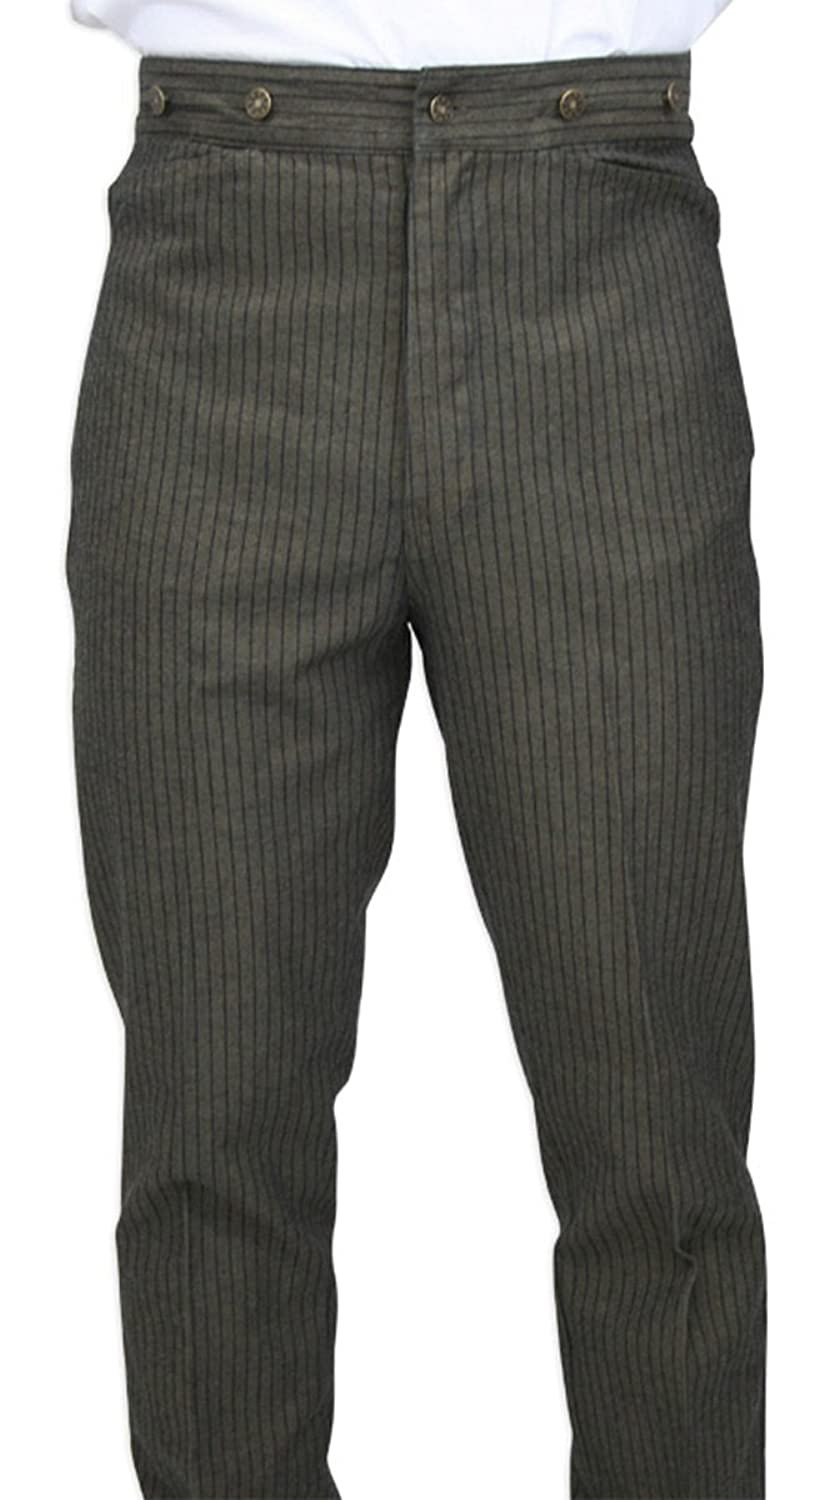 Steampunk Pants Mens High Waist Cotton Ludlow Striped Trousers $59.95 AT vintagedancer.com